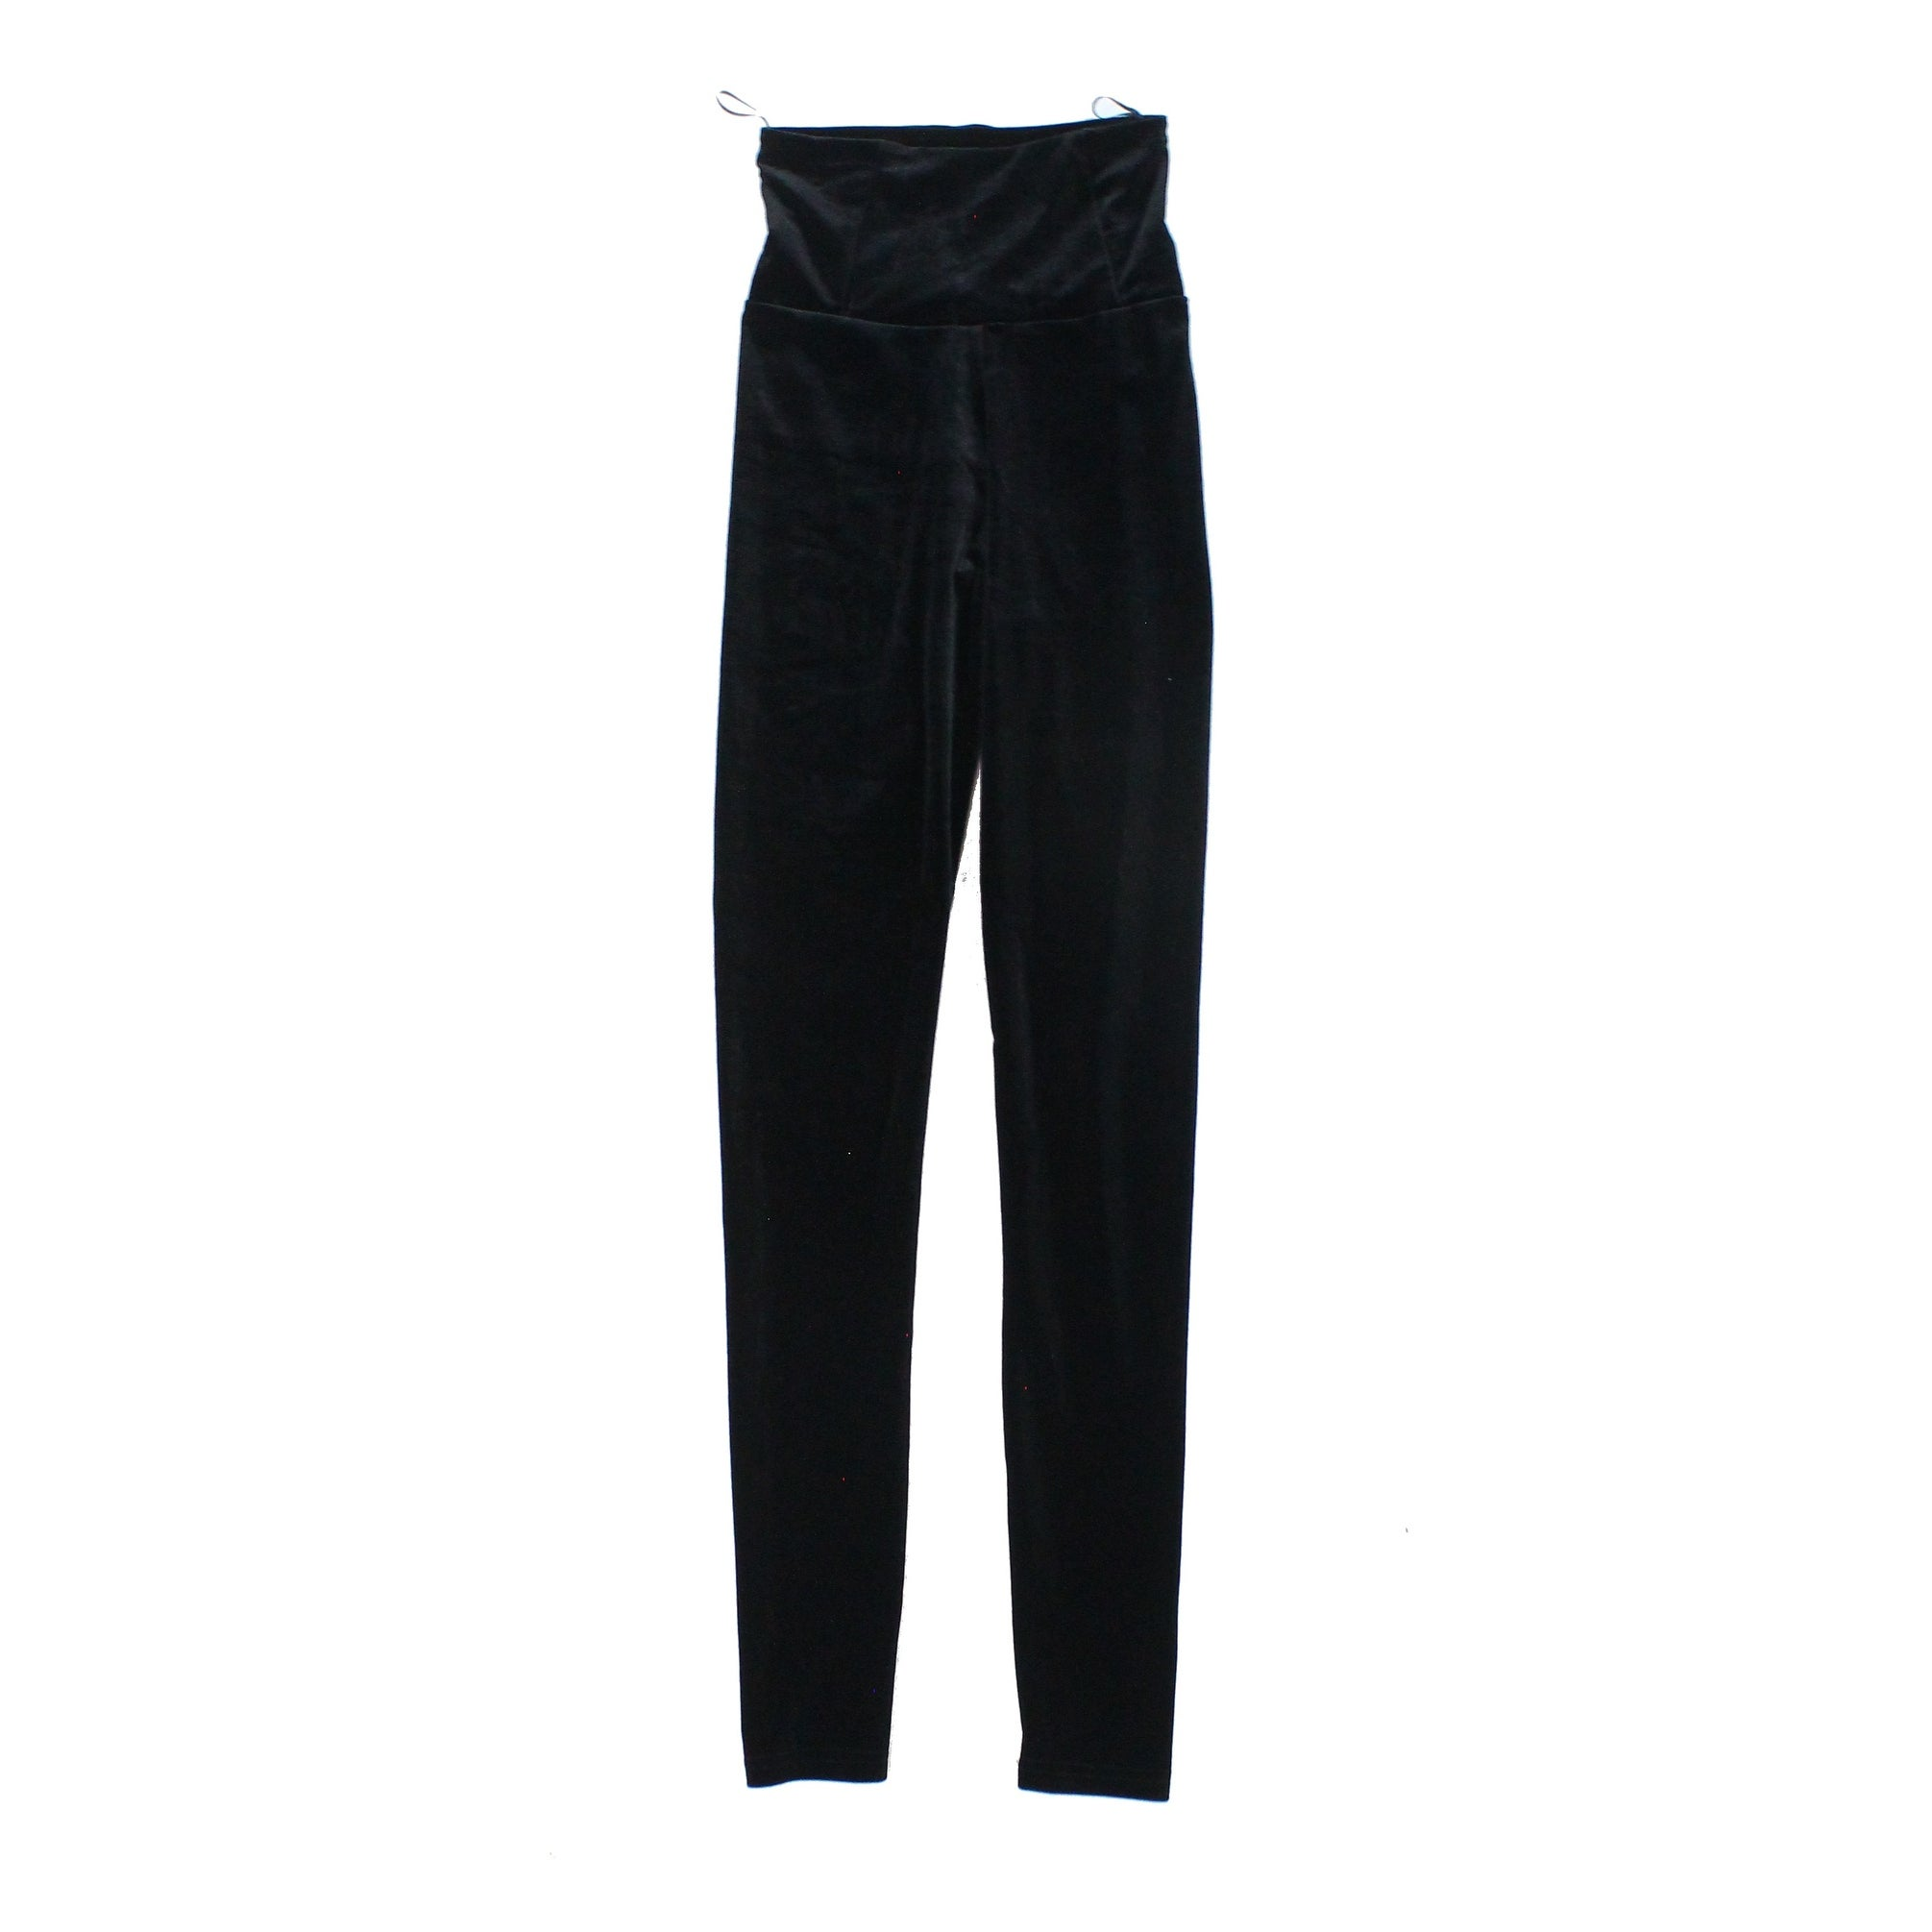 01eee543eb6 Shop RDI Women s Velvet High-Waisted Leggings Pants Stretch - Free Shipping  On Orders Over  45 - Overstock.com - 26902486